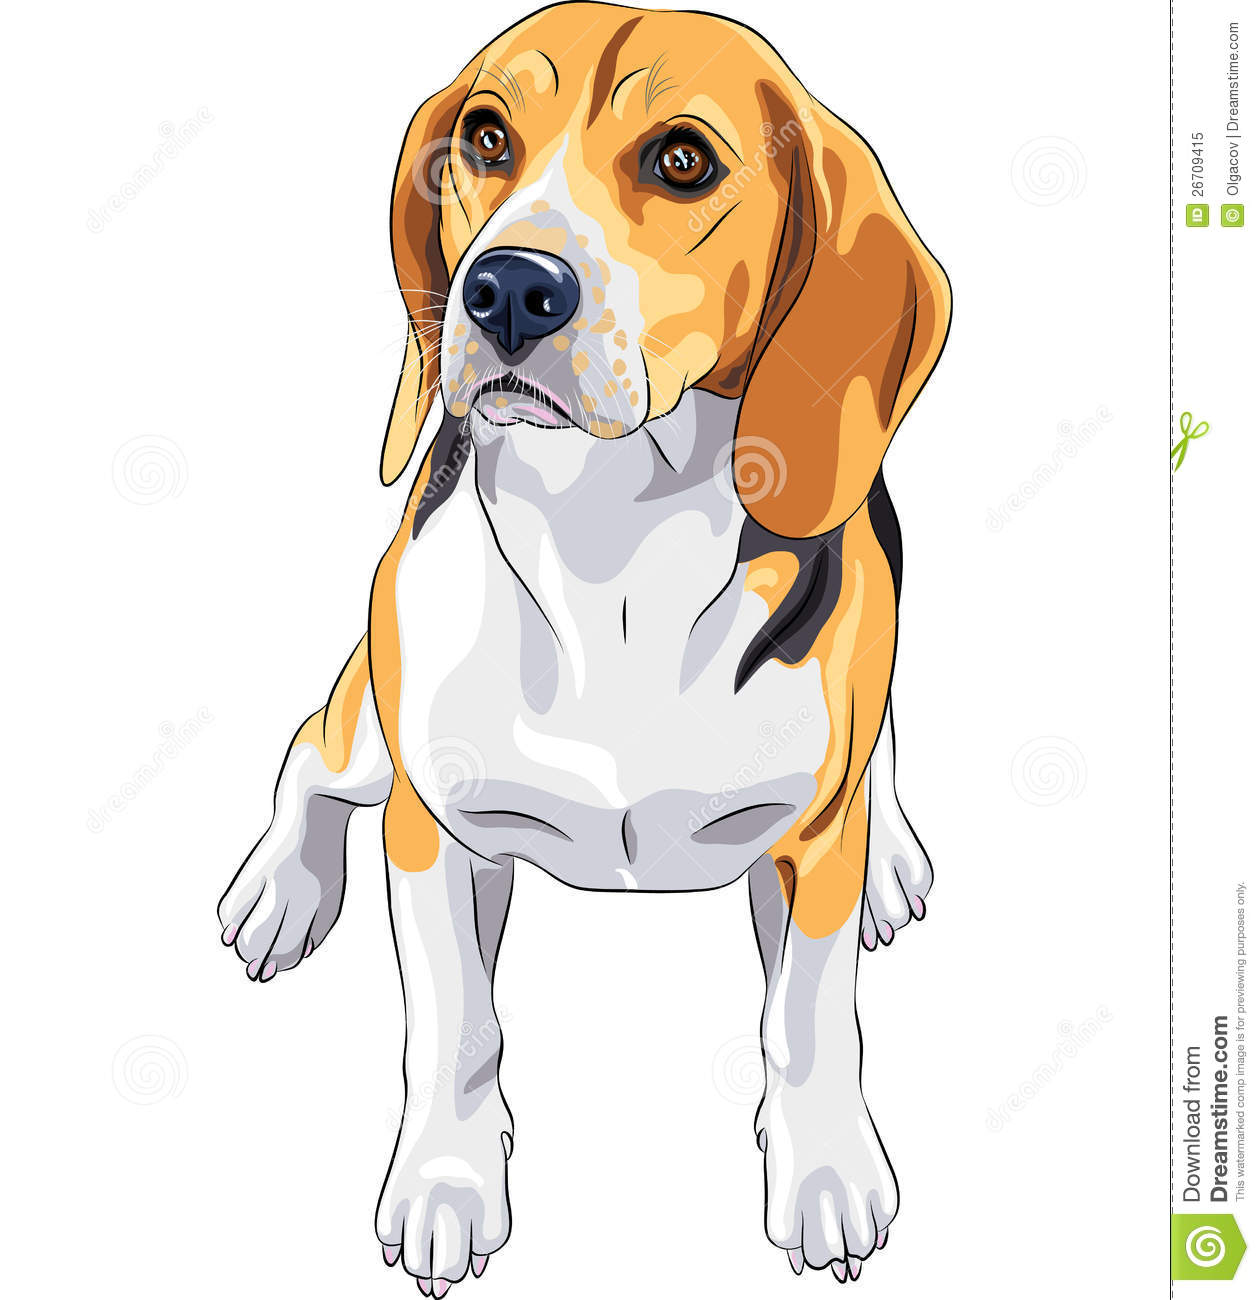 Vector Sketch Dog Beagle Breed Sitting Royalty Free Stock Image